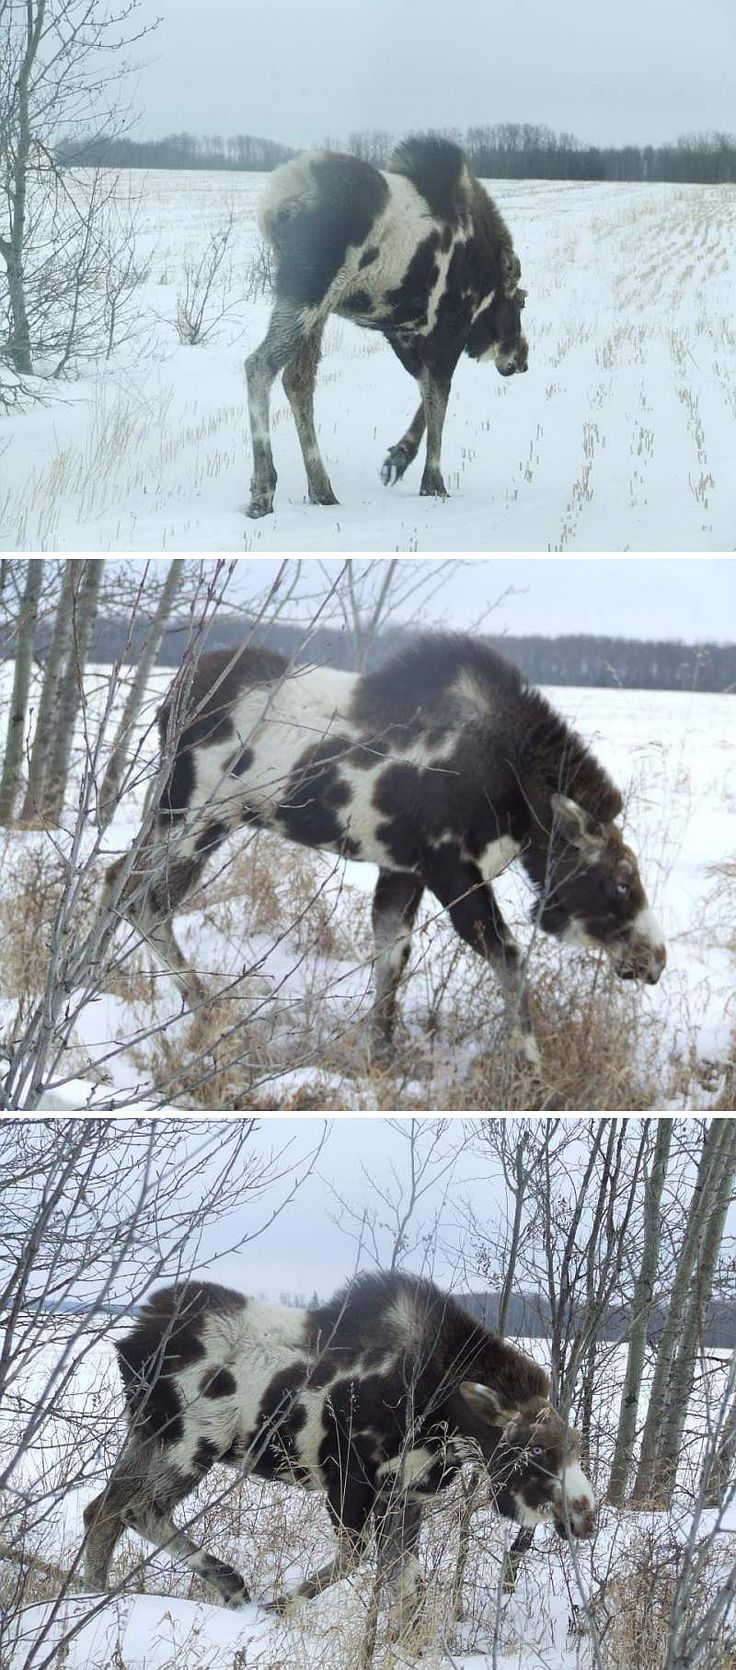 Piebald Moose in Fahler, Alberta, Canada. If I saw that I'd think it was a weird-looking horse!